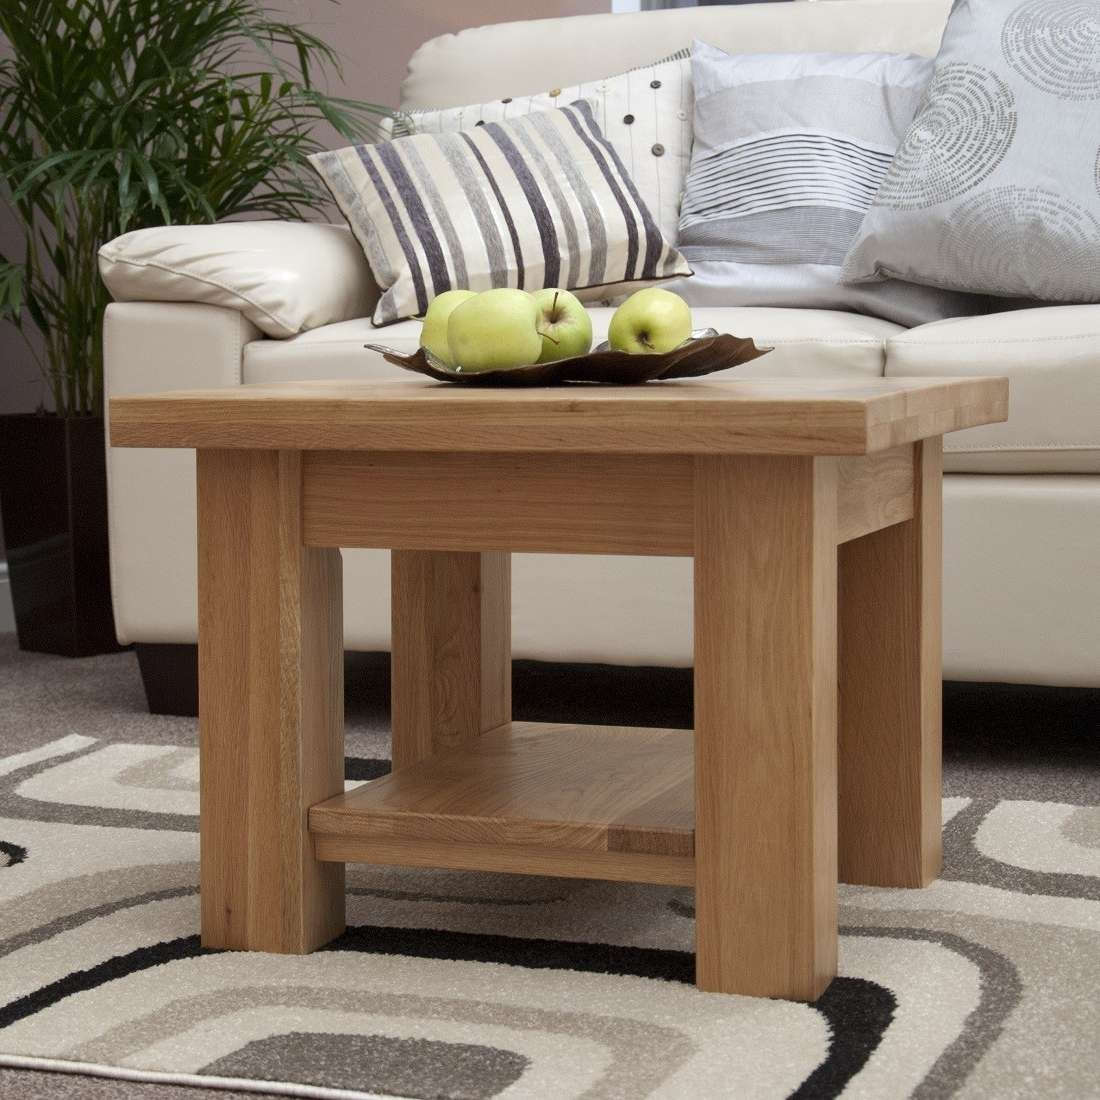 Oak Furniture Uk Throughout Well Known Square Oak Coffee Tables (Gallery 15 of 20)